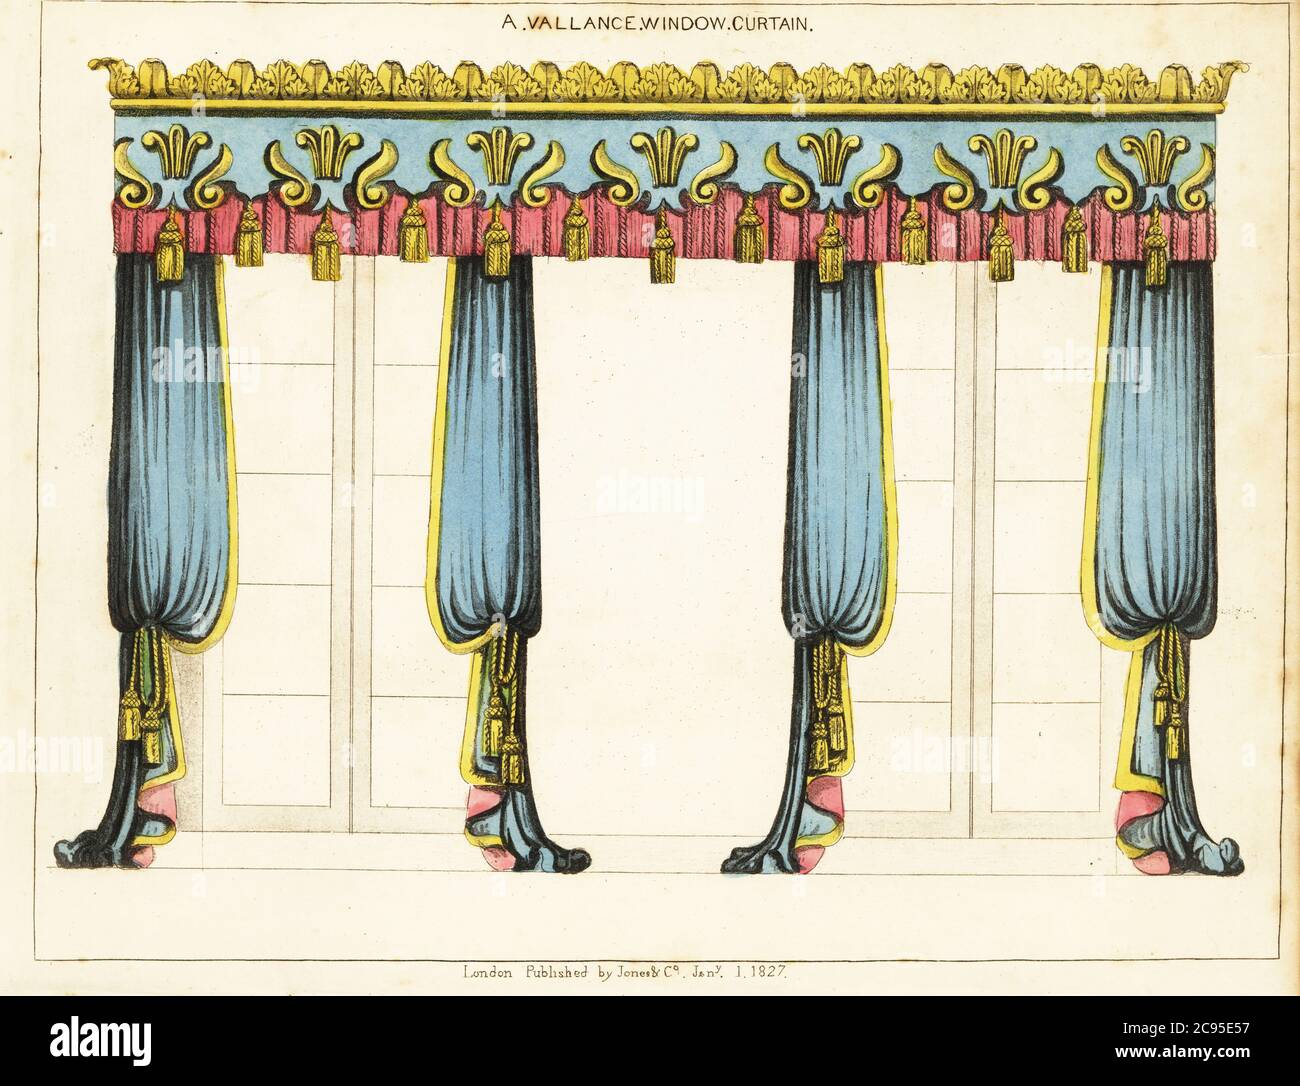 https www alamy com a vallance window curtain window with ornate pelmet or valance covering the top curtain rod blue curtains and gold cords and tassels handcoloured copperplate engraving from george smiths the cabinet maker and upholsterers guide jones and co london 1828 george smith was upholsterer and furniture draughtsman to his majesty the prince of wales later king george iv circa 1786 1826 image367070515 html